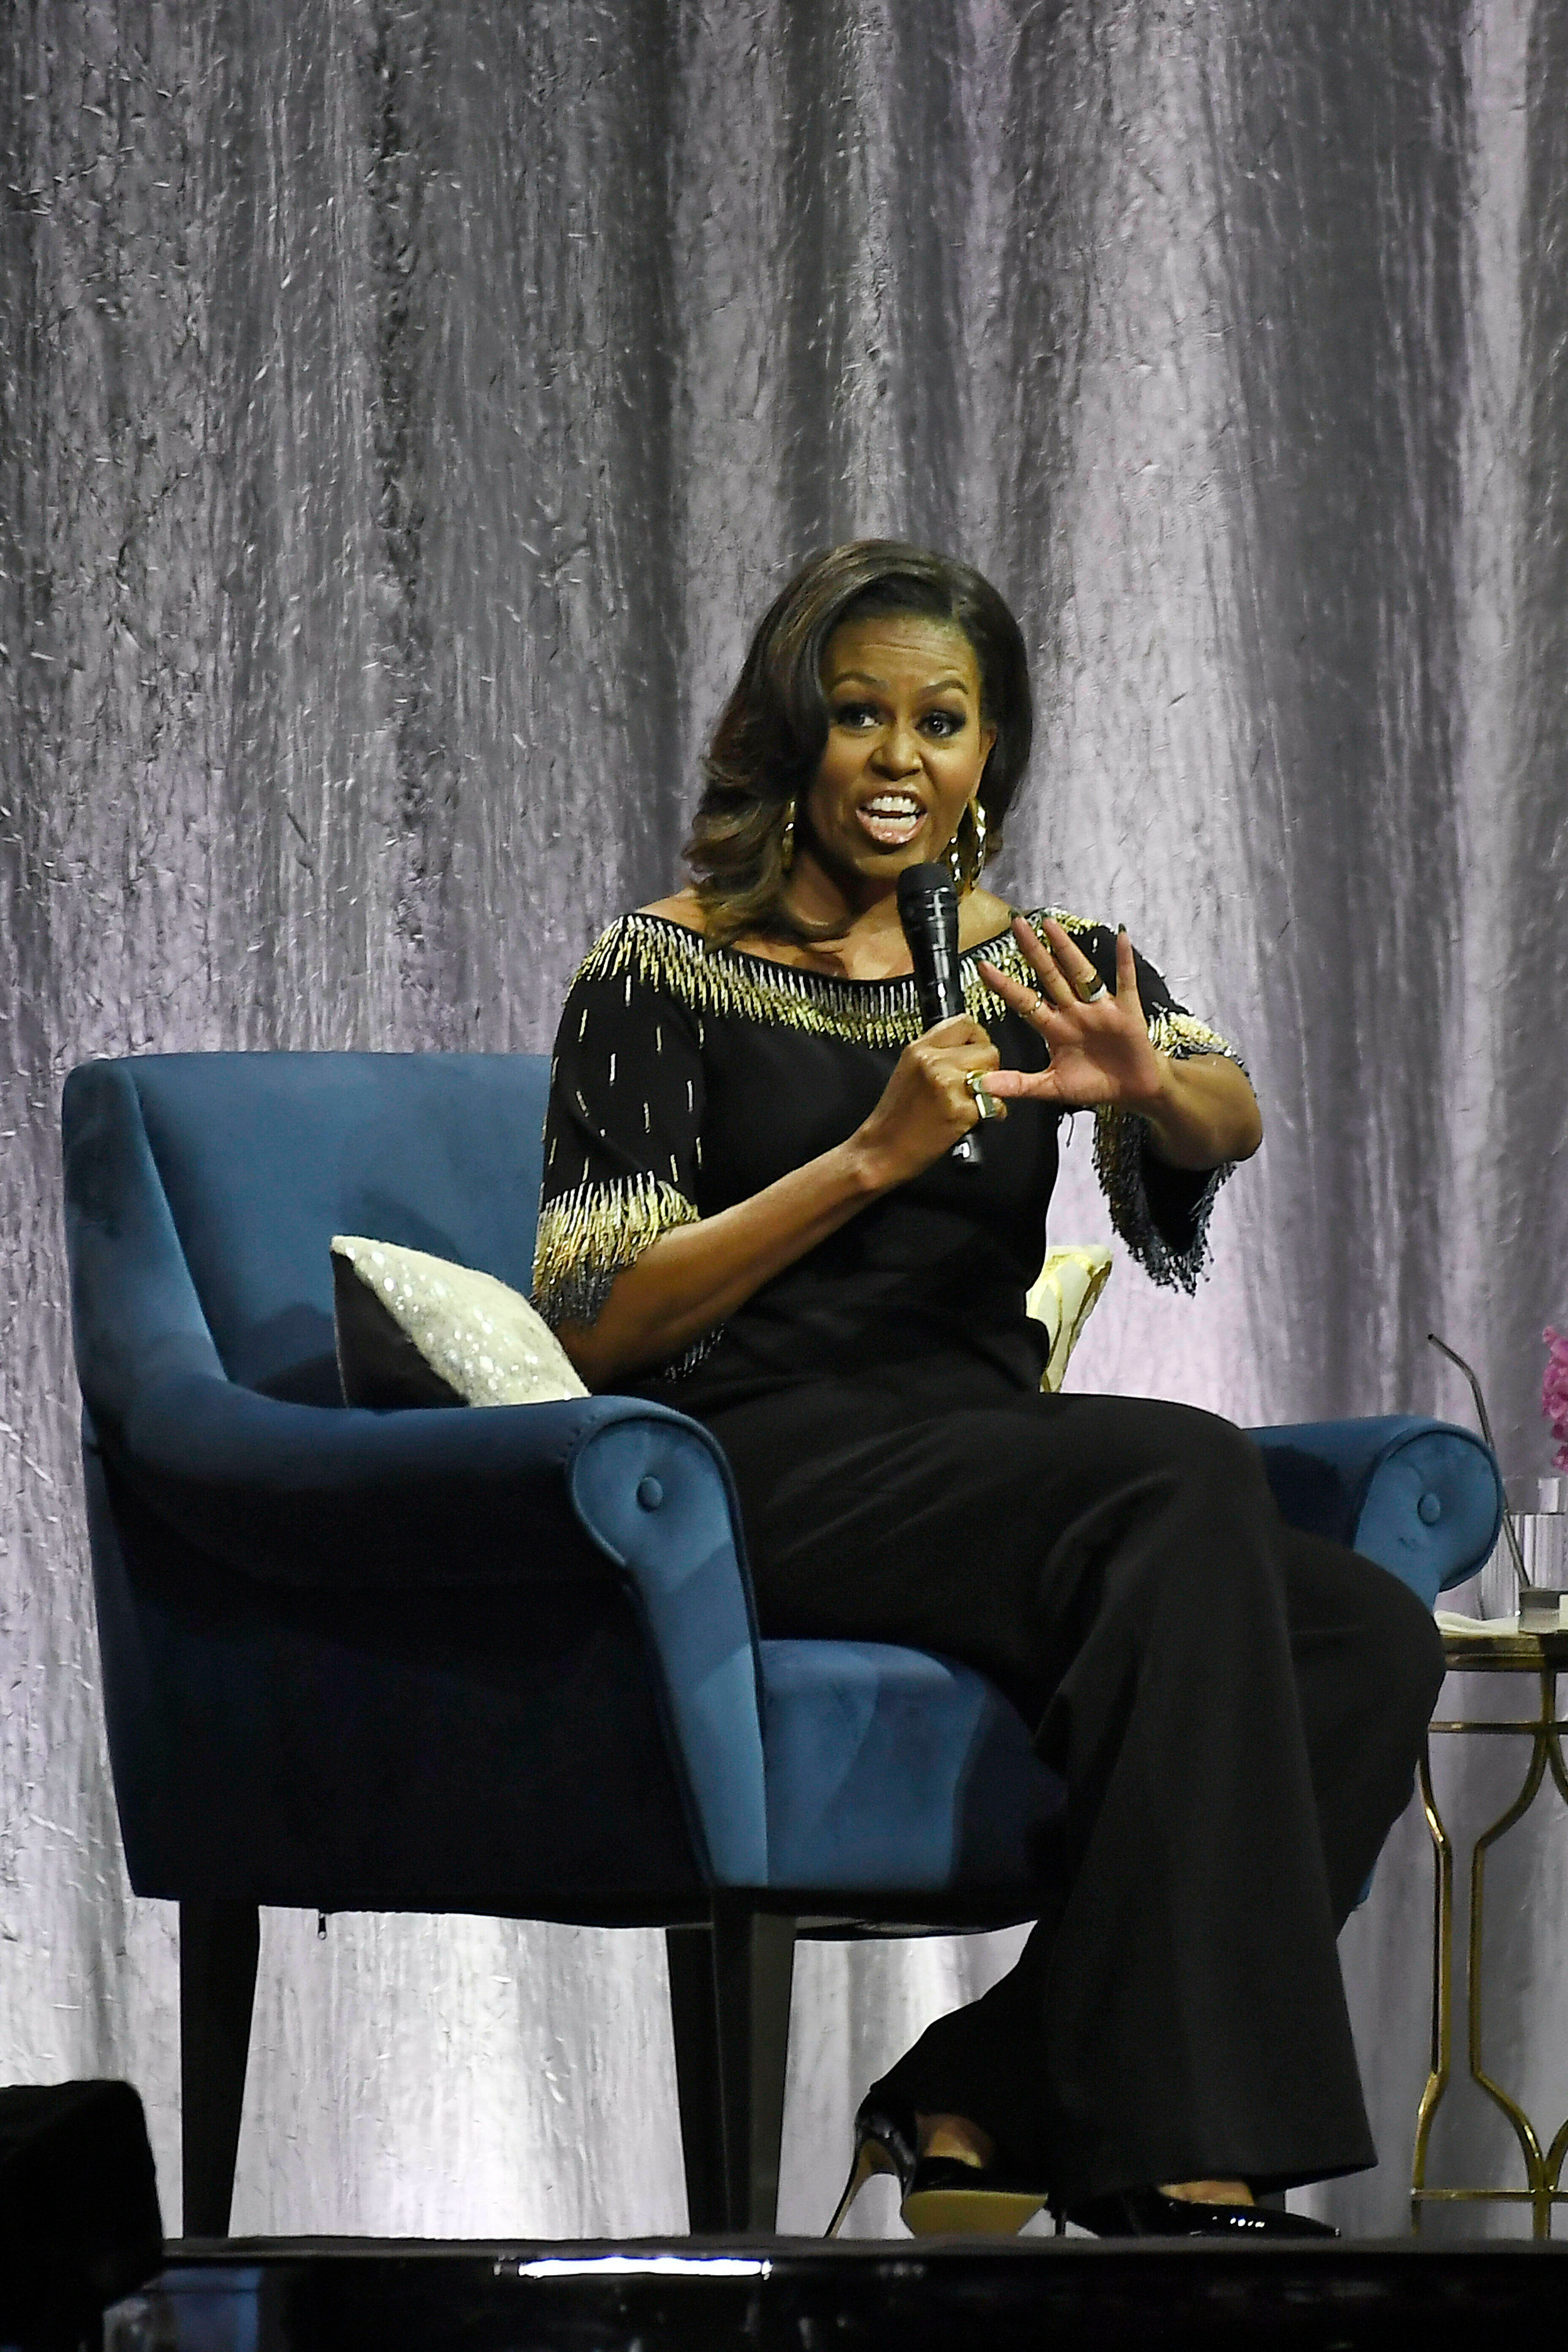 Photo by: KGC-138/STAR MAX/IPx 2019 4/14/19 Becoming: An Intimate Conversation with Michelle Obama at the O2 Arena in London.